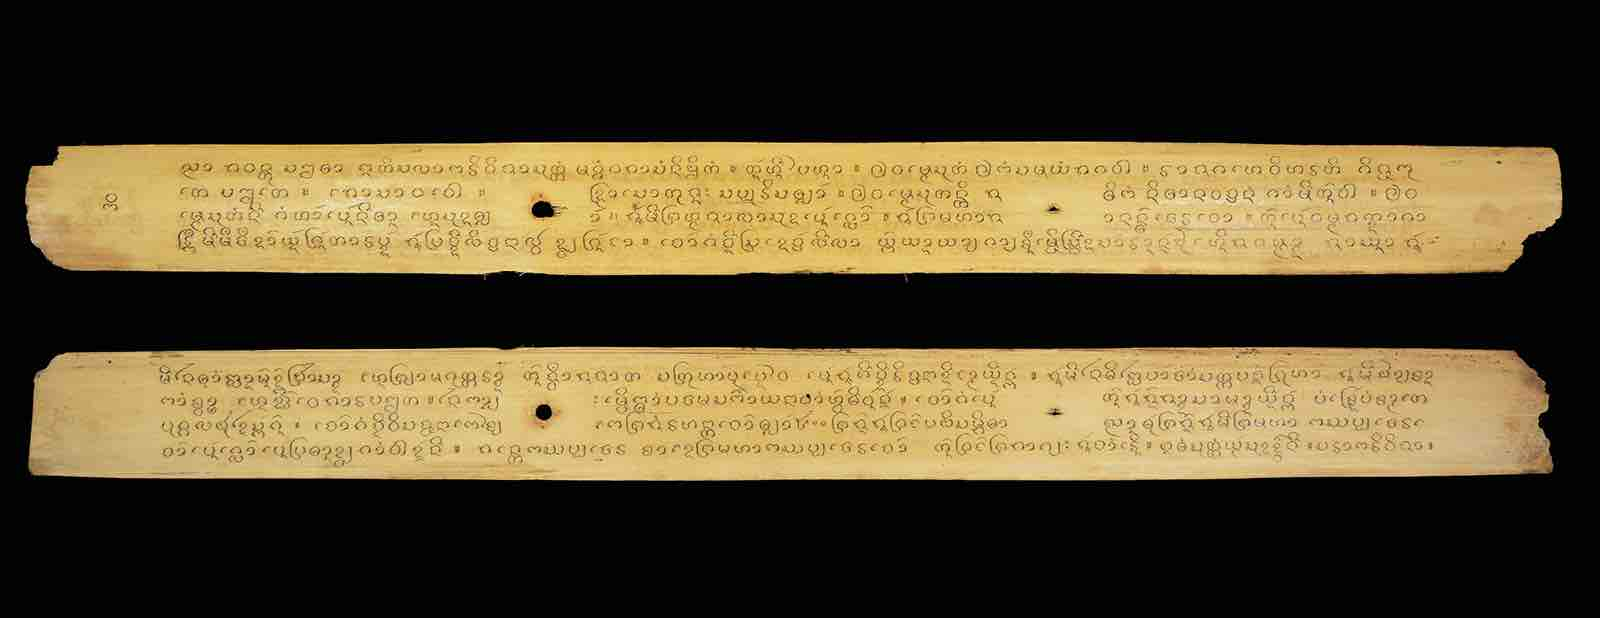 Buddhist palm-leaf manuscript containing the Suttanta doctrine (ສະຣາກະຣິວິຊາສູດ) written in 1855, from Luang Prabang, Laos. <a href='https://www.hmmlcloud.org/dreamsea/detail.php?msid=144'>DREAMSEA Project Number DS 0011 00001</a>.